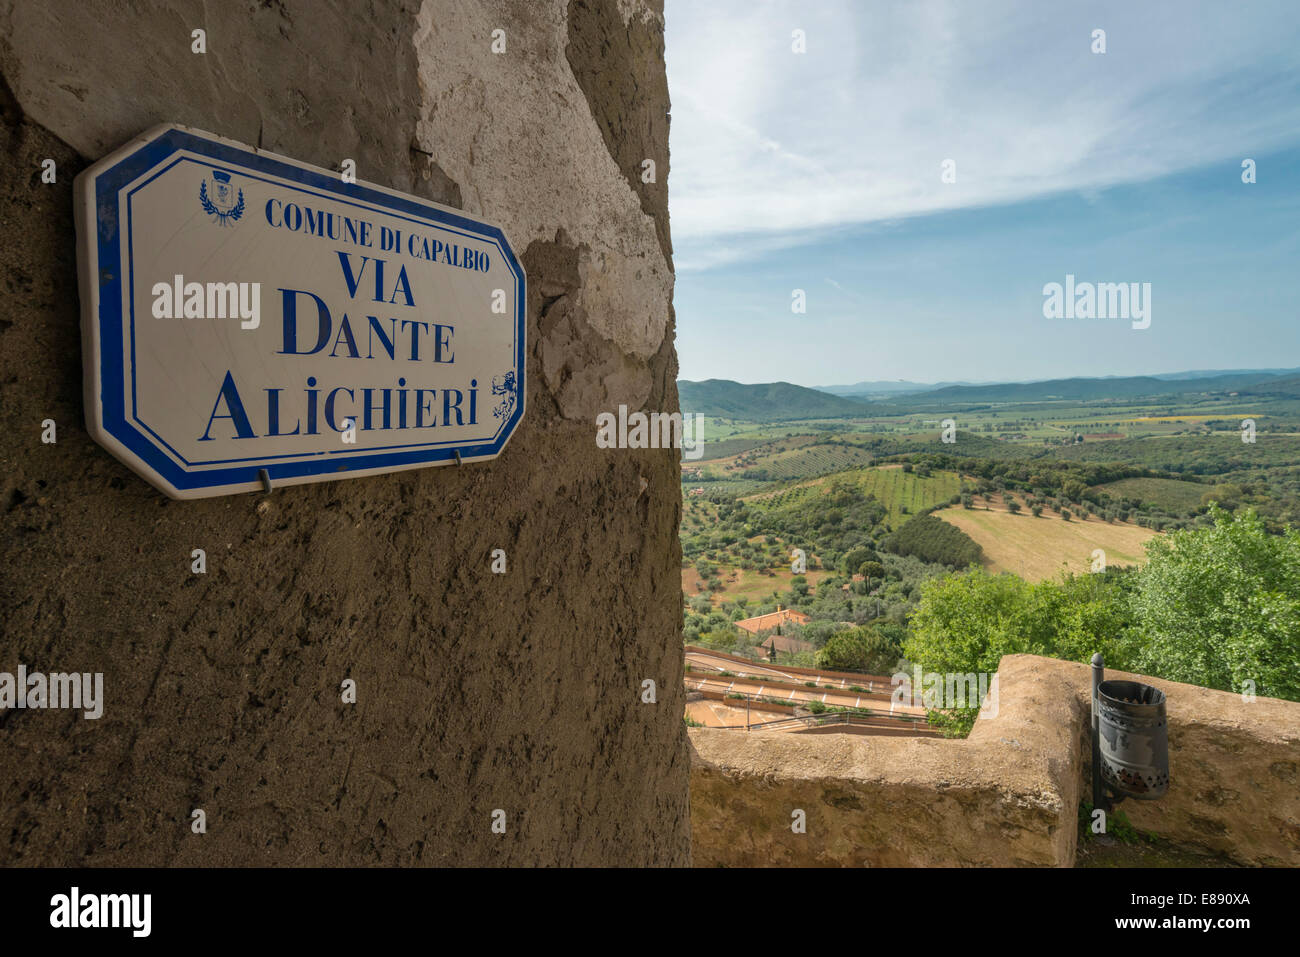 Houses and details of internal streets of Capalbio, Tuscany,Italy - Stock Image